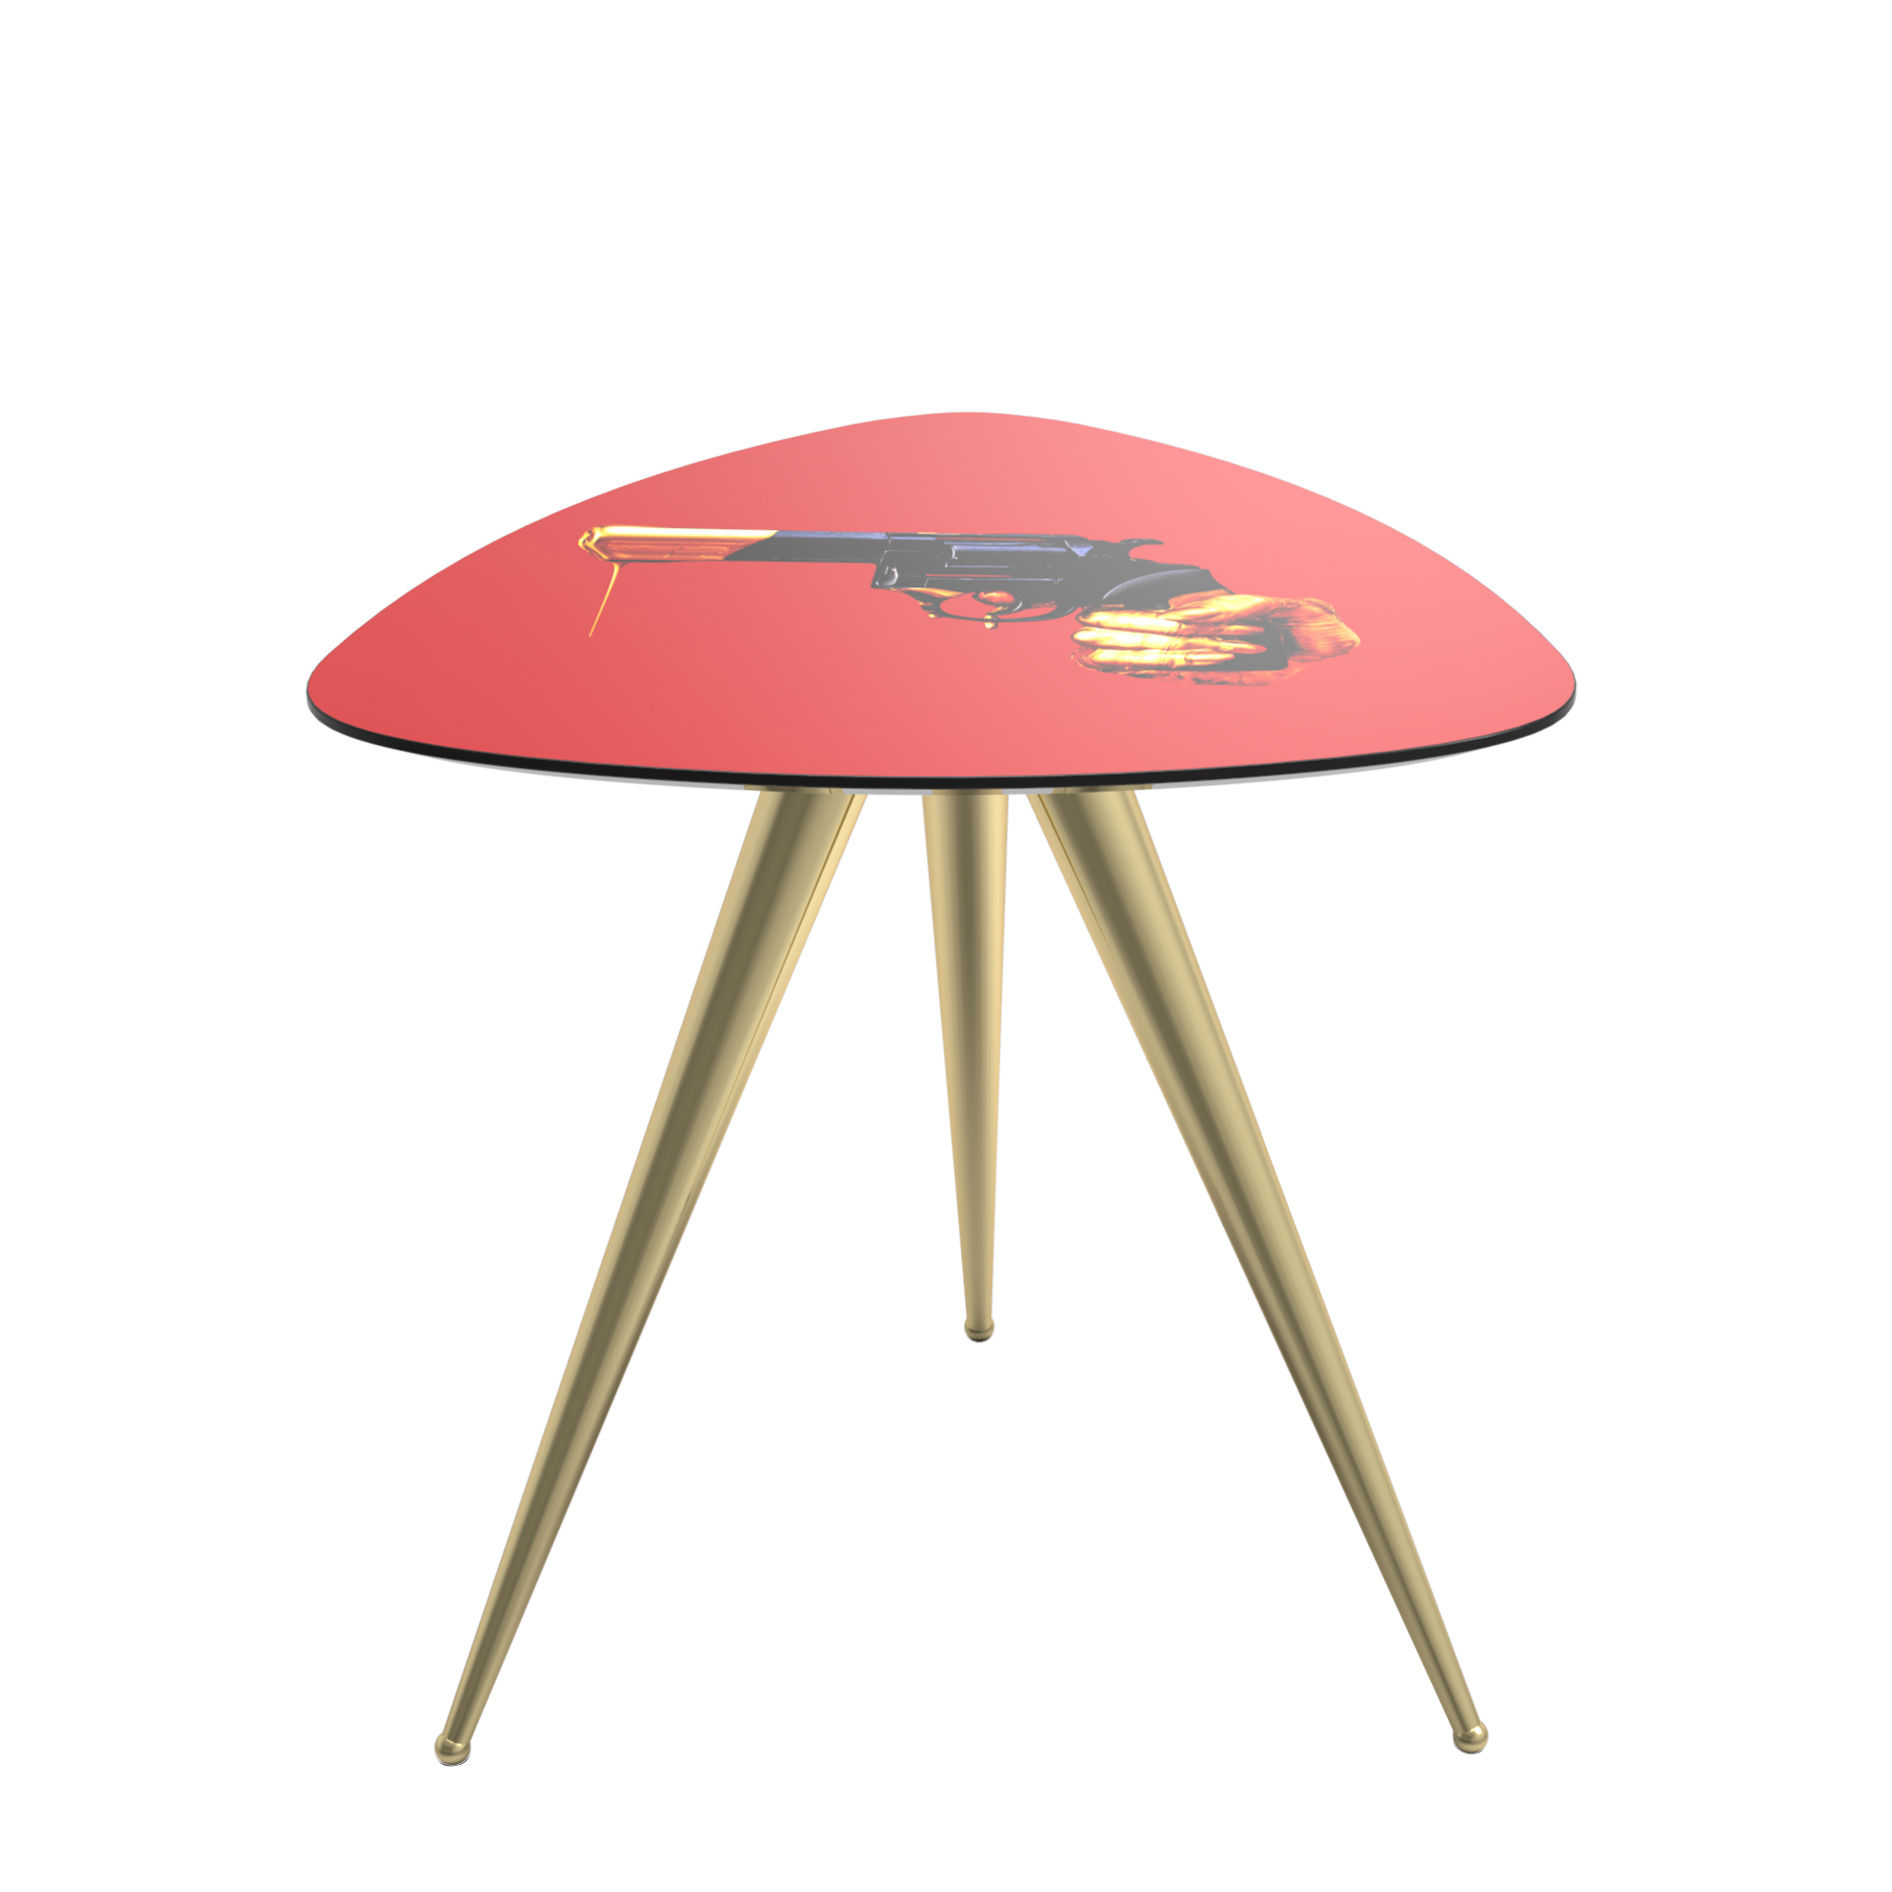 Outdoor - Coffee Tables - Toiletpaper - Revolver End table - / 57 x 57 x H 48 cm by Seletti - Revolver - MDF, Metal